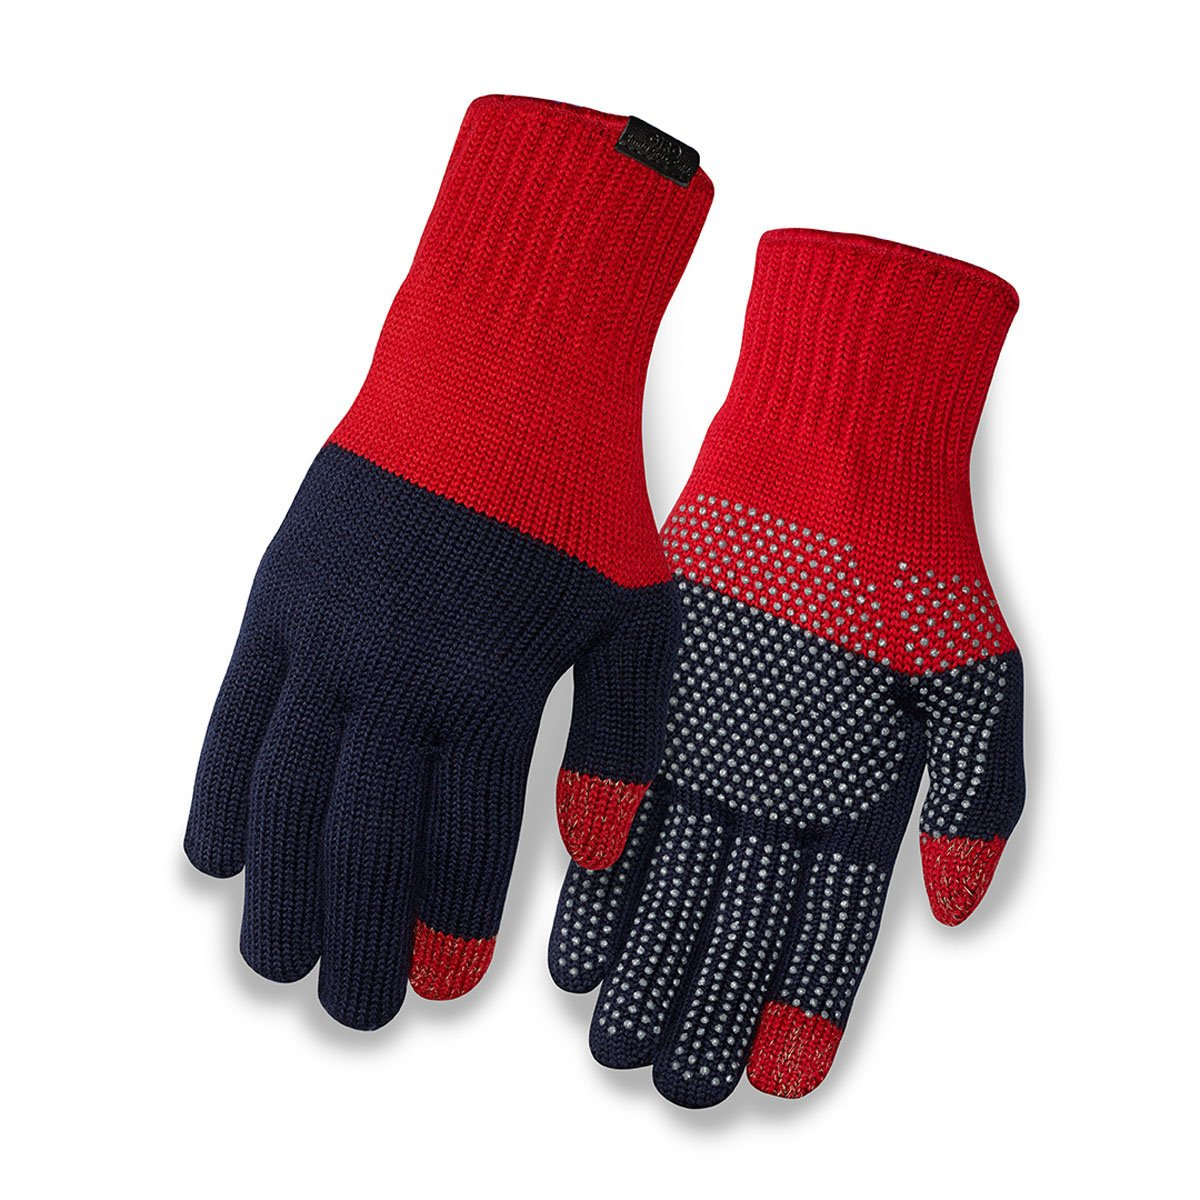 Very Amazon.com : Giro Knit Merino Wool Gloves : Sports & Outdoors BH23